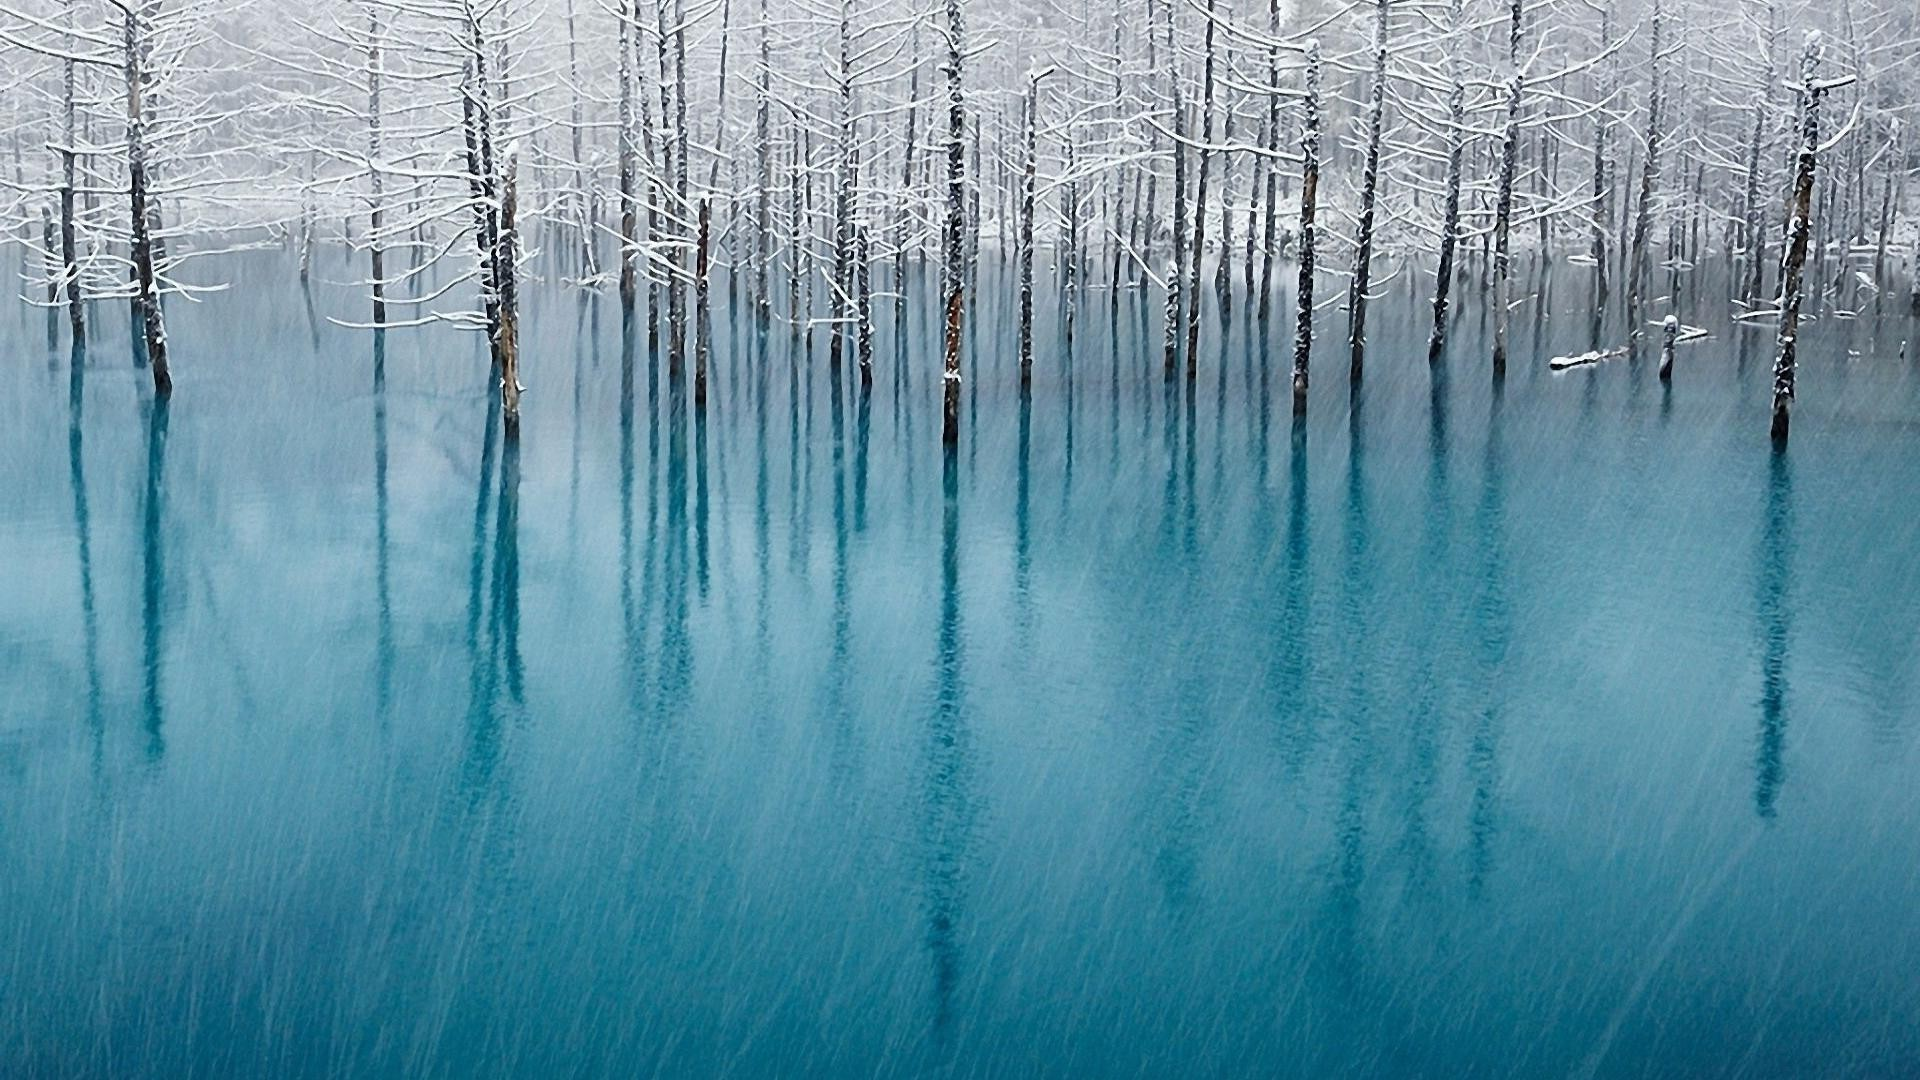 Snowfall, trees, water